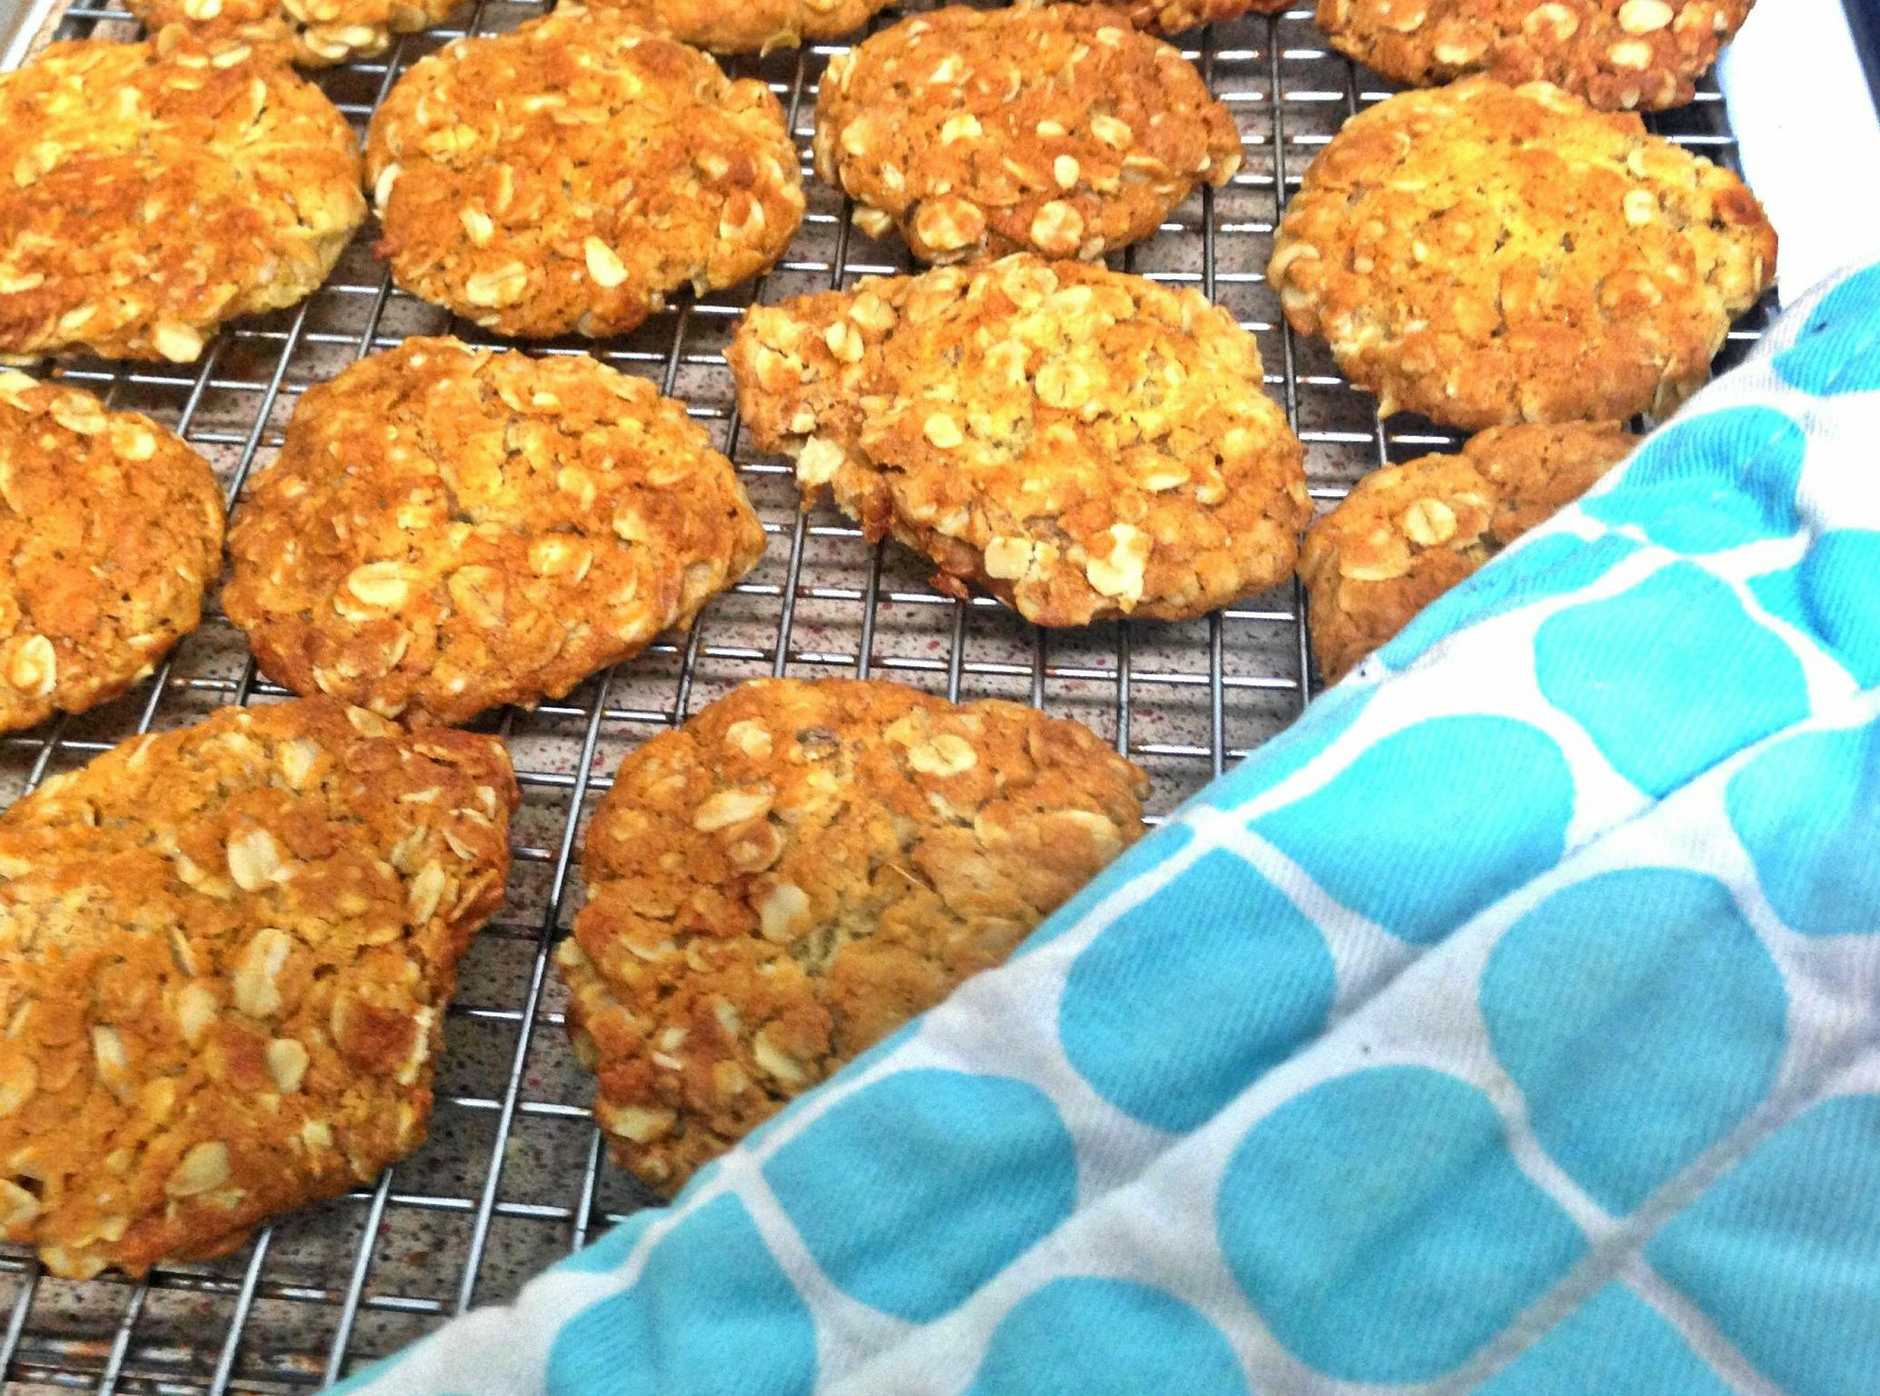 ANZAC BISCUITS: These simple and delicious biscuits are traditionally made to commemorate Anzac Day.